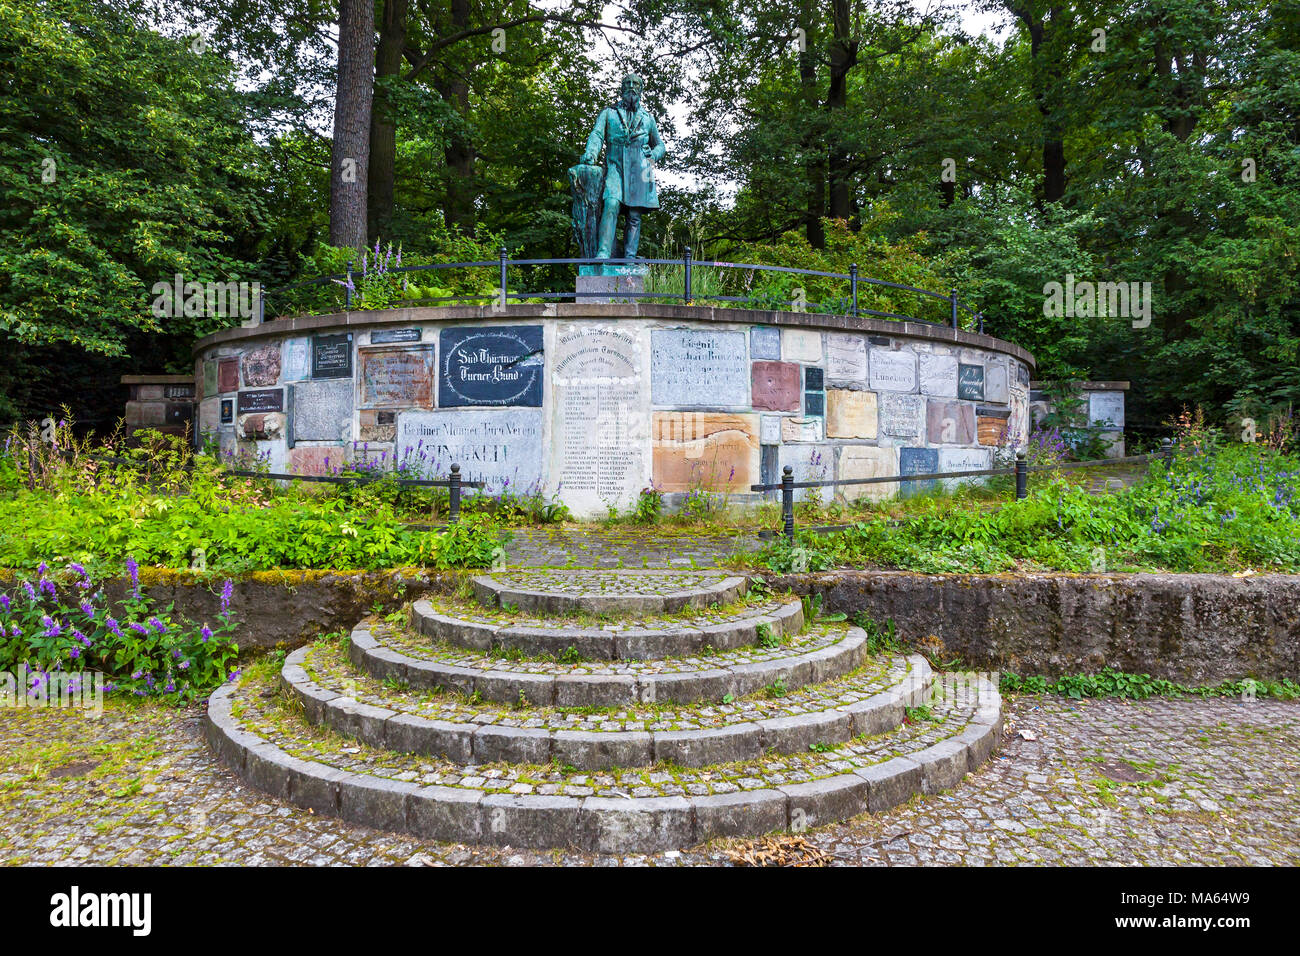 Monument of Friedrich Ludwig Jahn, German gymnastics educator. Known as Turnvater Jahn (meaning 'Father of Gymnastics' Jahn) - Stock Image